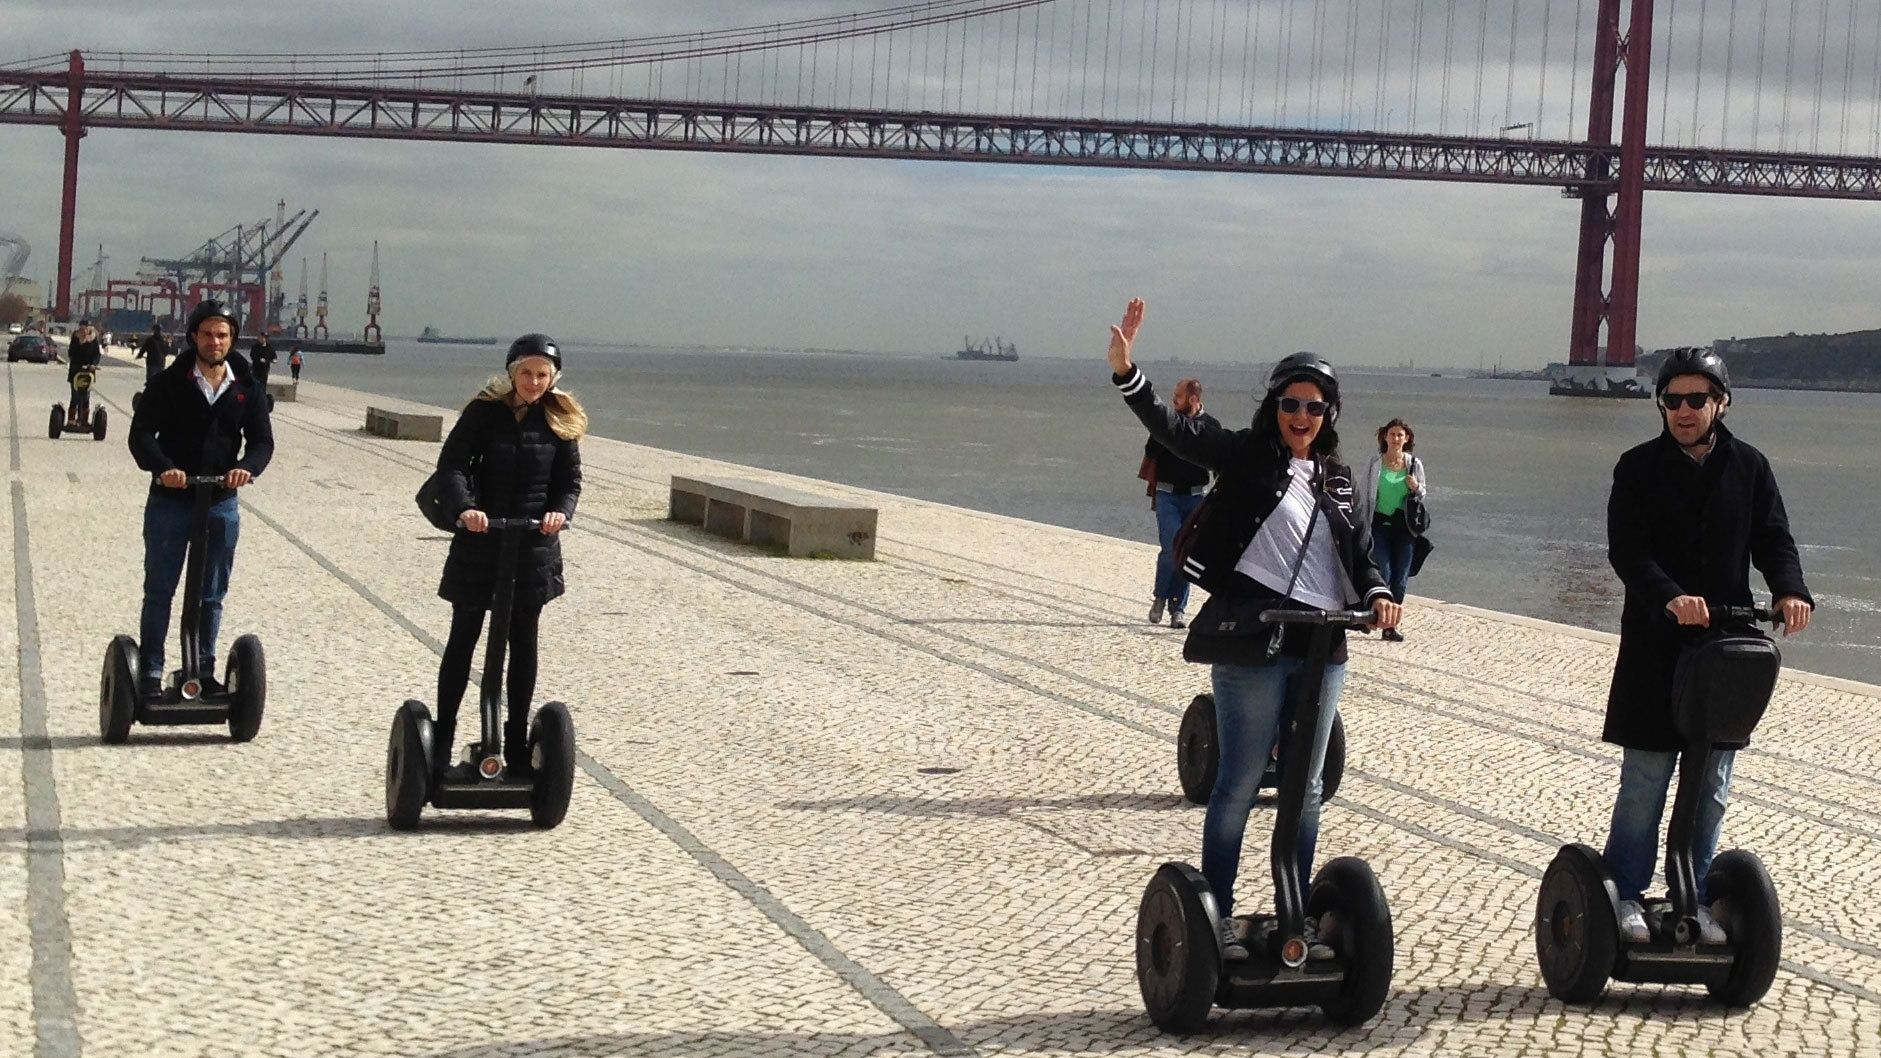 Segway group on path along the coast with bridge in the background in Lisbon